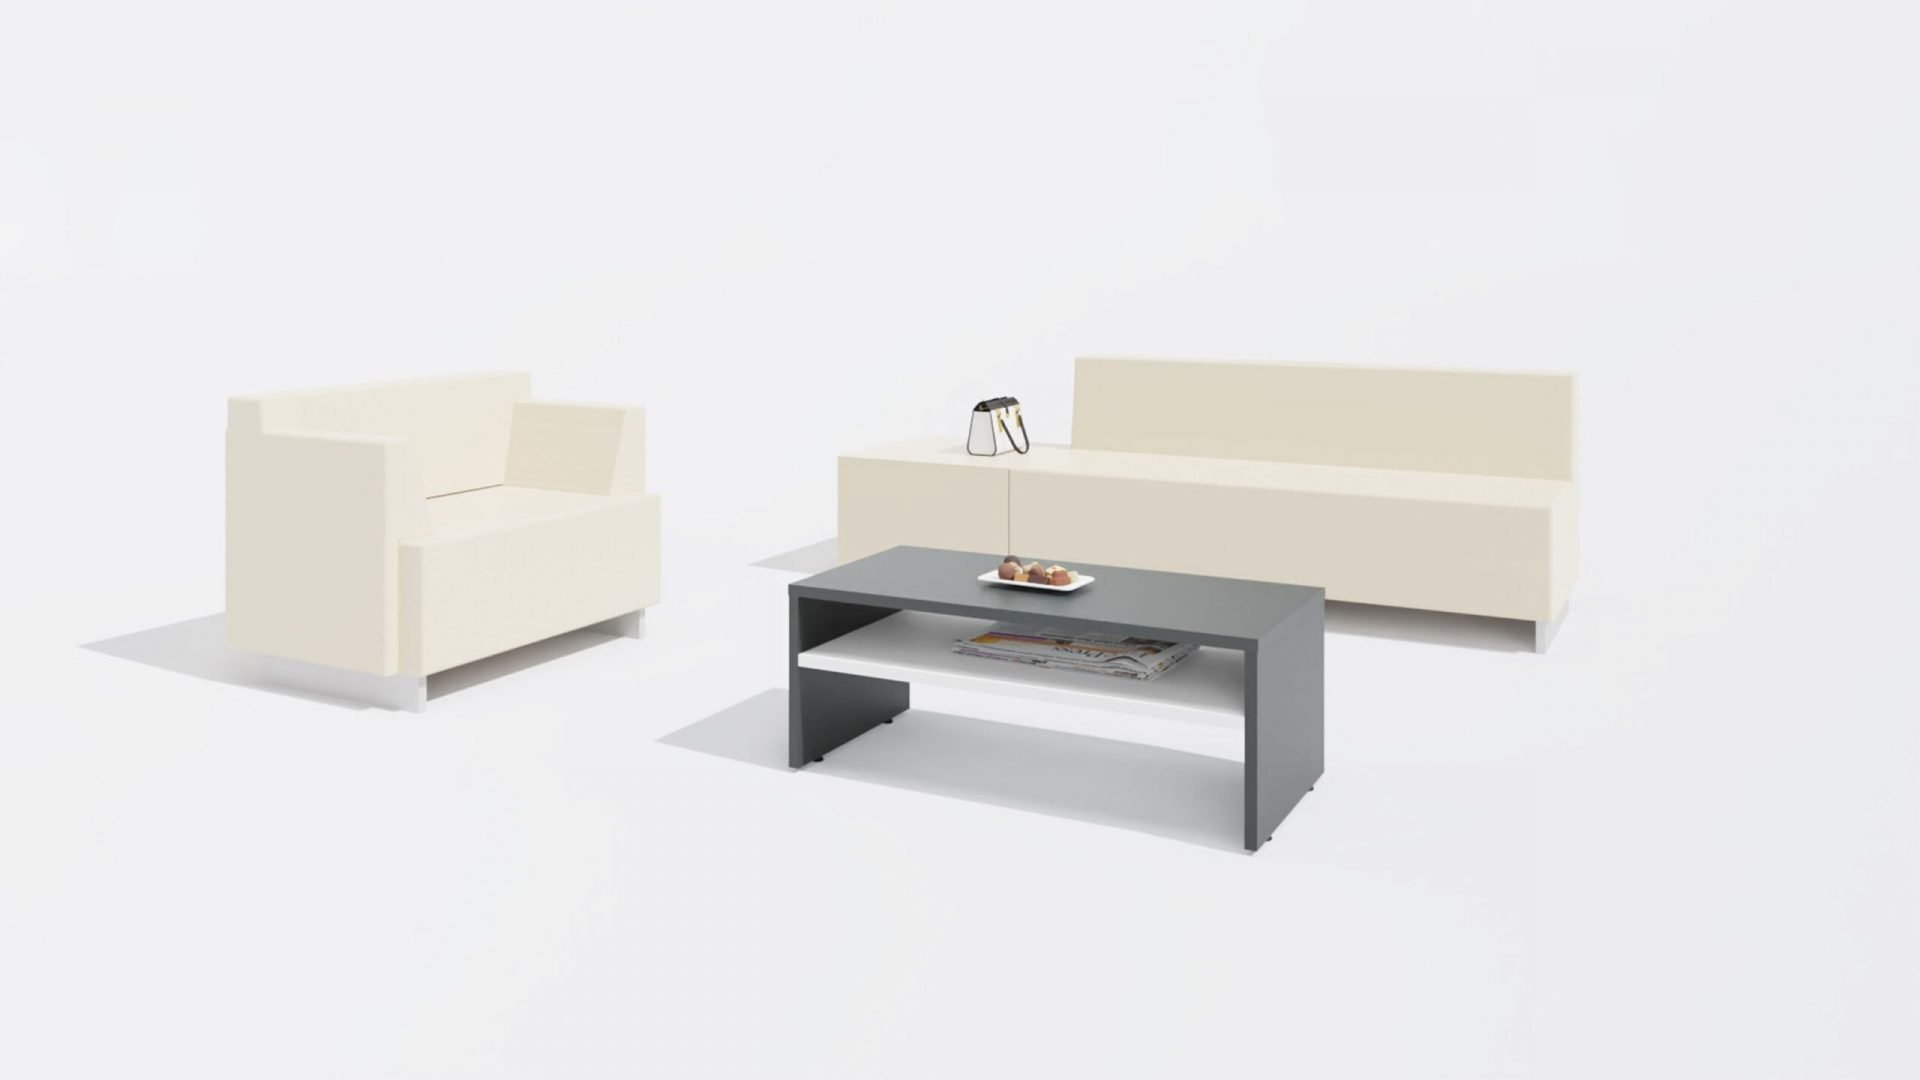 Rectangular Coffee Table 1656 with a Sofa and a Chair